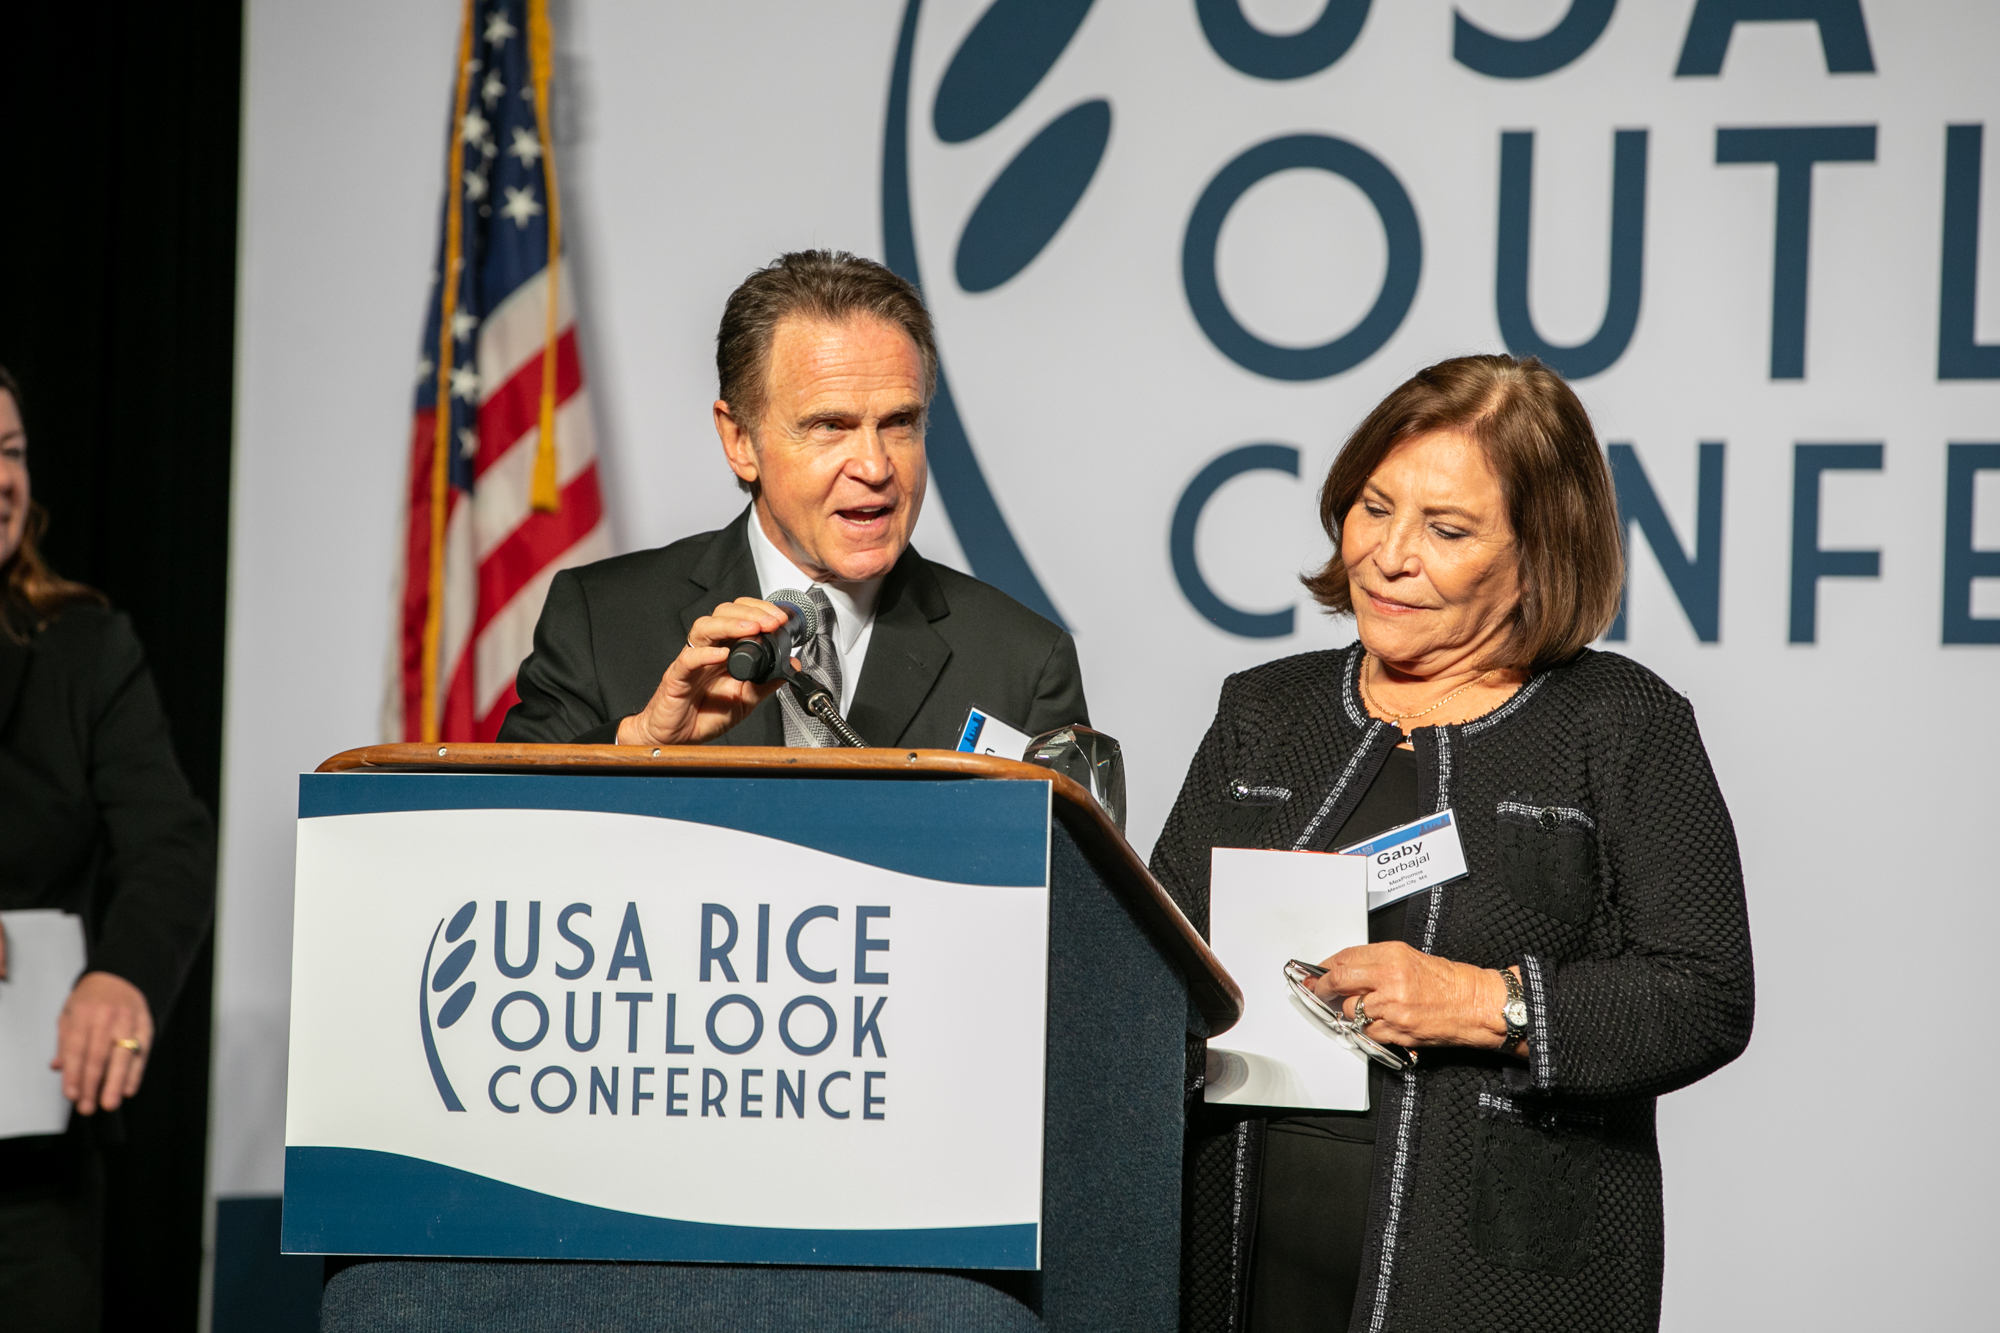 Marvin Lehrer and Gaby Carbajel were honored for two decades tirelessly promoting U.S. rice in Mexico